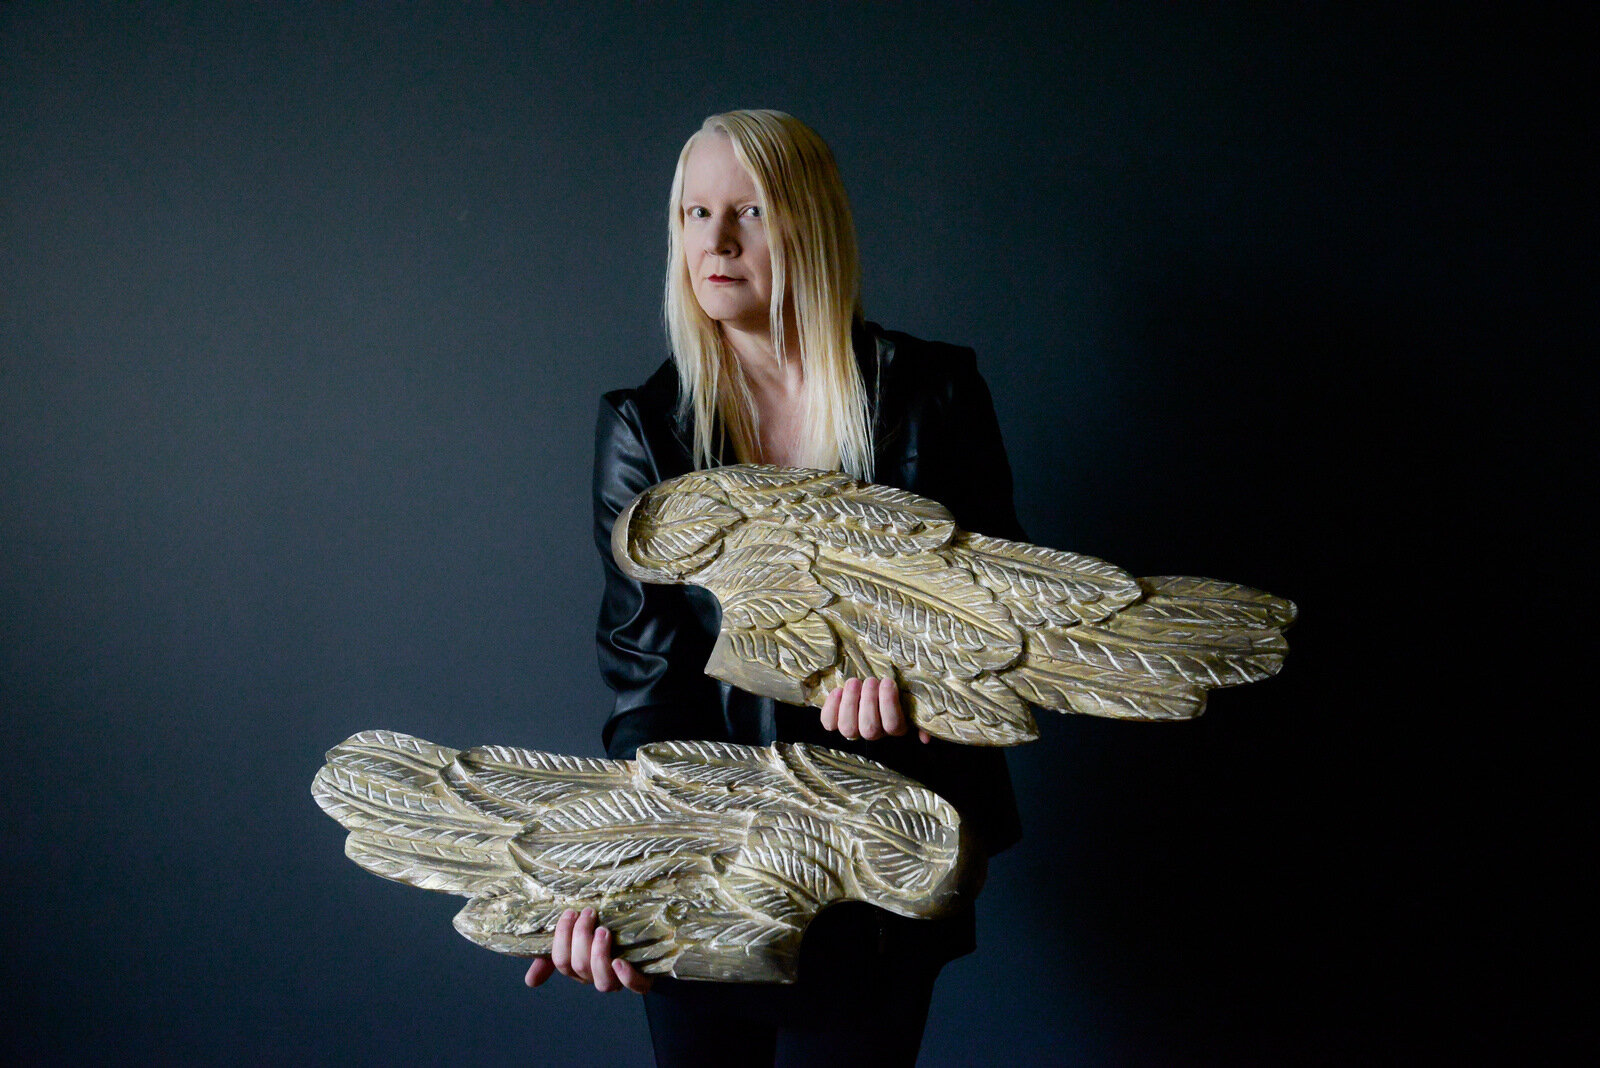 Shawna Lemay holding wings